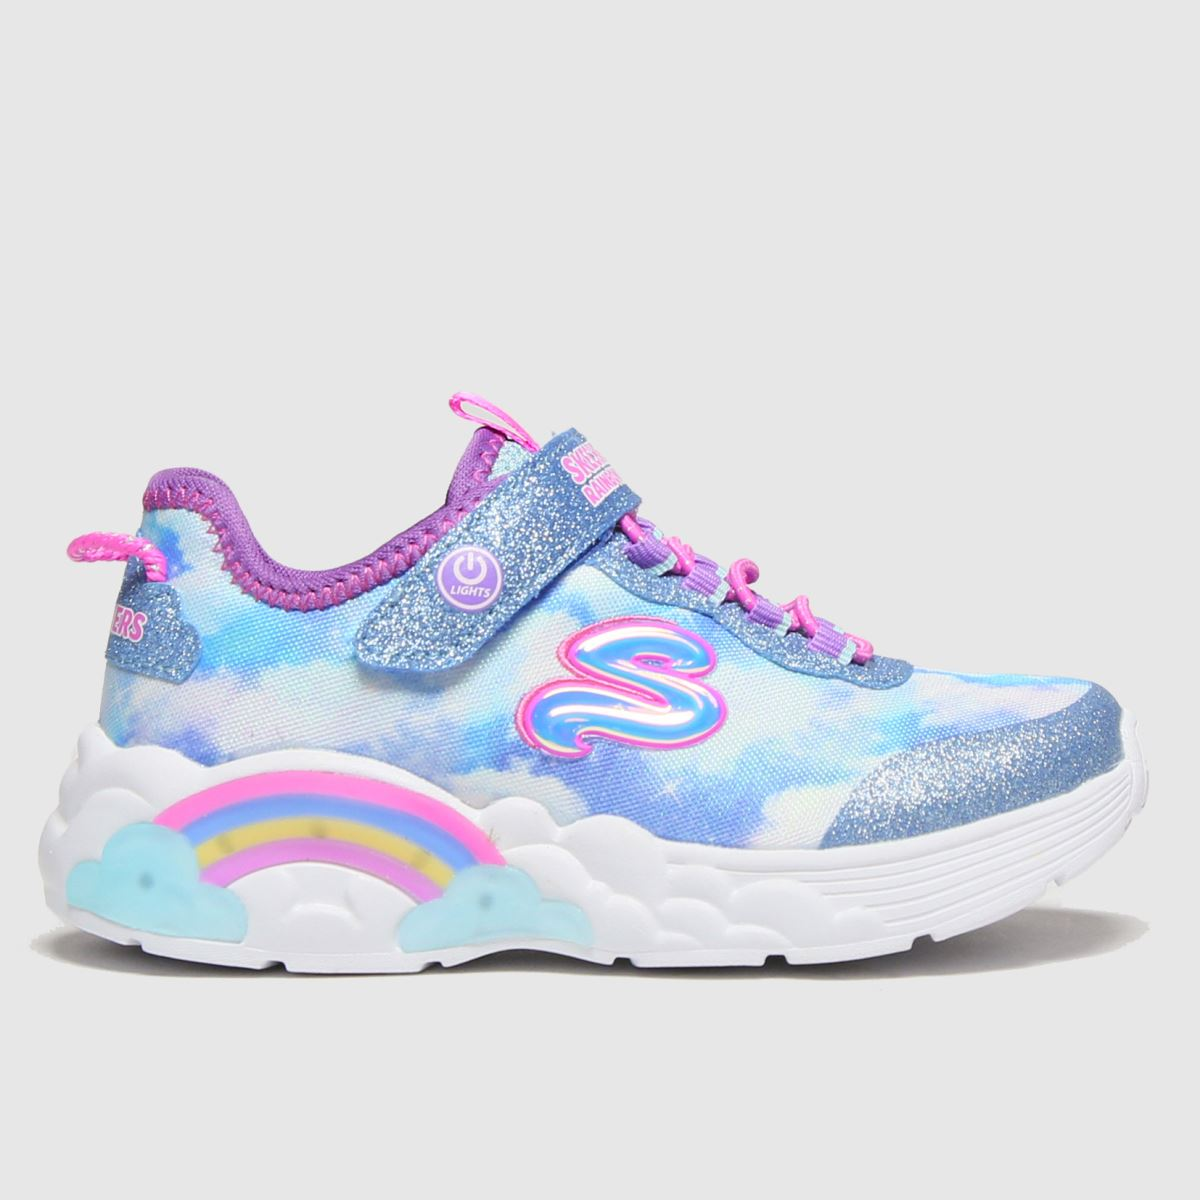 SKECHERS Pale Blue Rainbow Lacer Trainers Junior